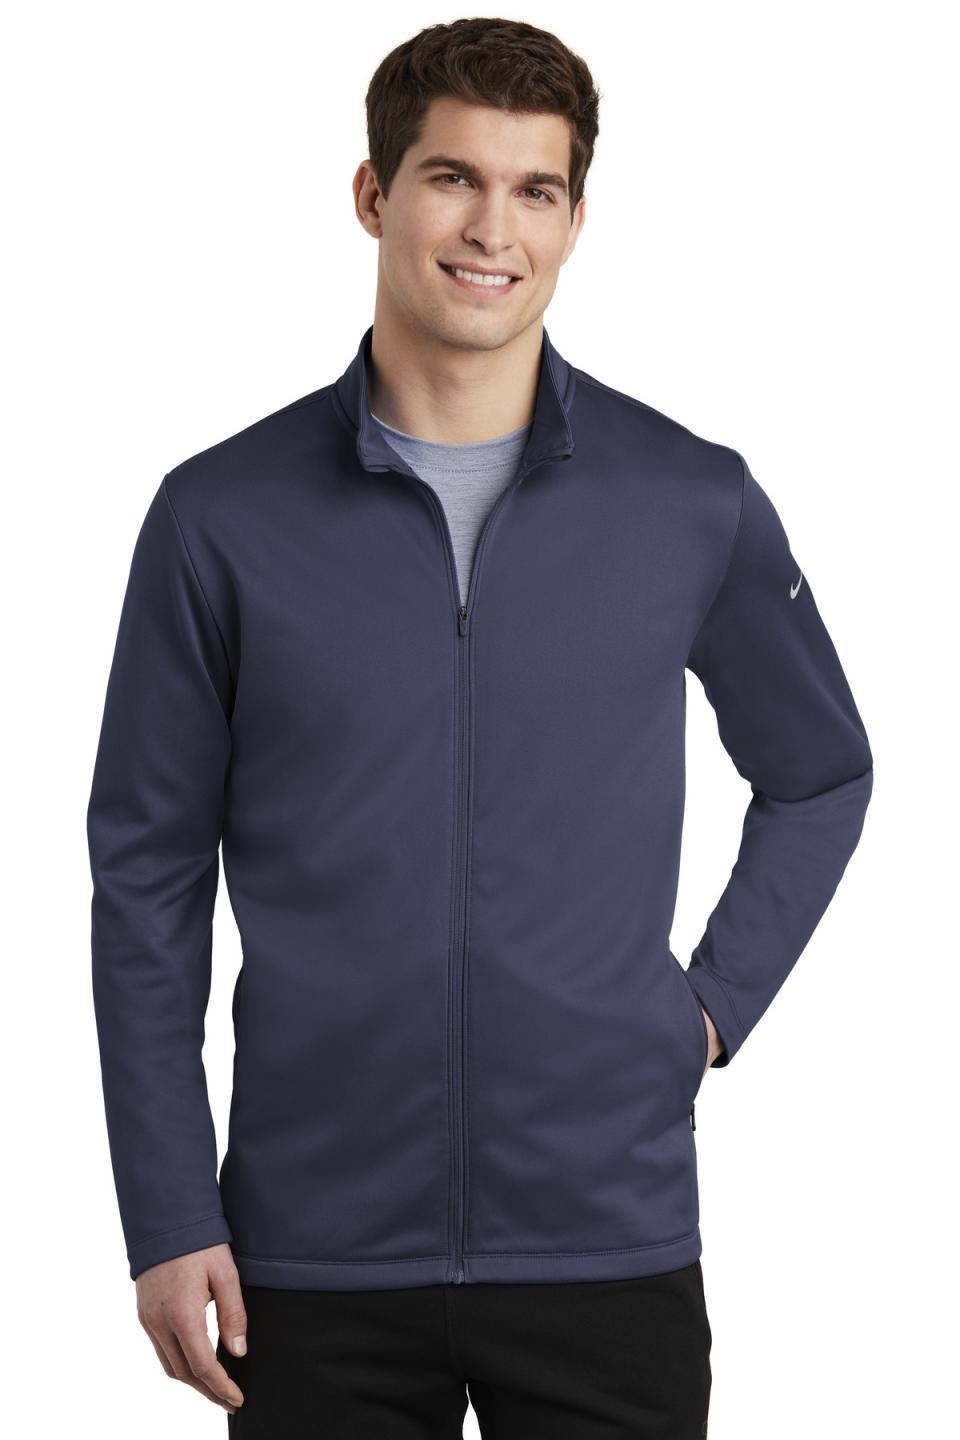 Nike Men's Therma-FIT Full-Zip Fleece